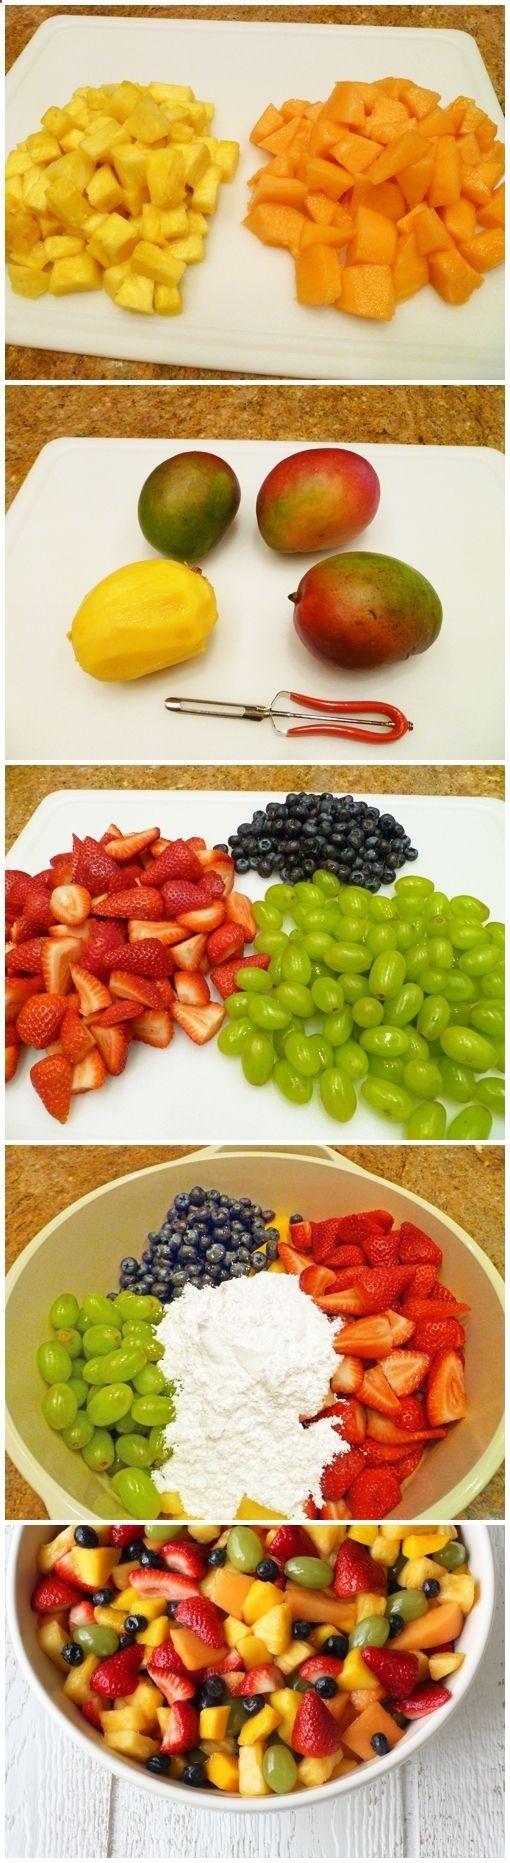 fruit salad for a crowd 1 fresh ripe pineapple 1 fresh ripe cantaloup 4 fresh ripe mangoes 2 pounds of fresh strawberries 4 cups of seedless green grapes 1 1/2 cups of fresh blueberries 3 to 5 cups powdered sugar - Adventure Ideaz